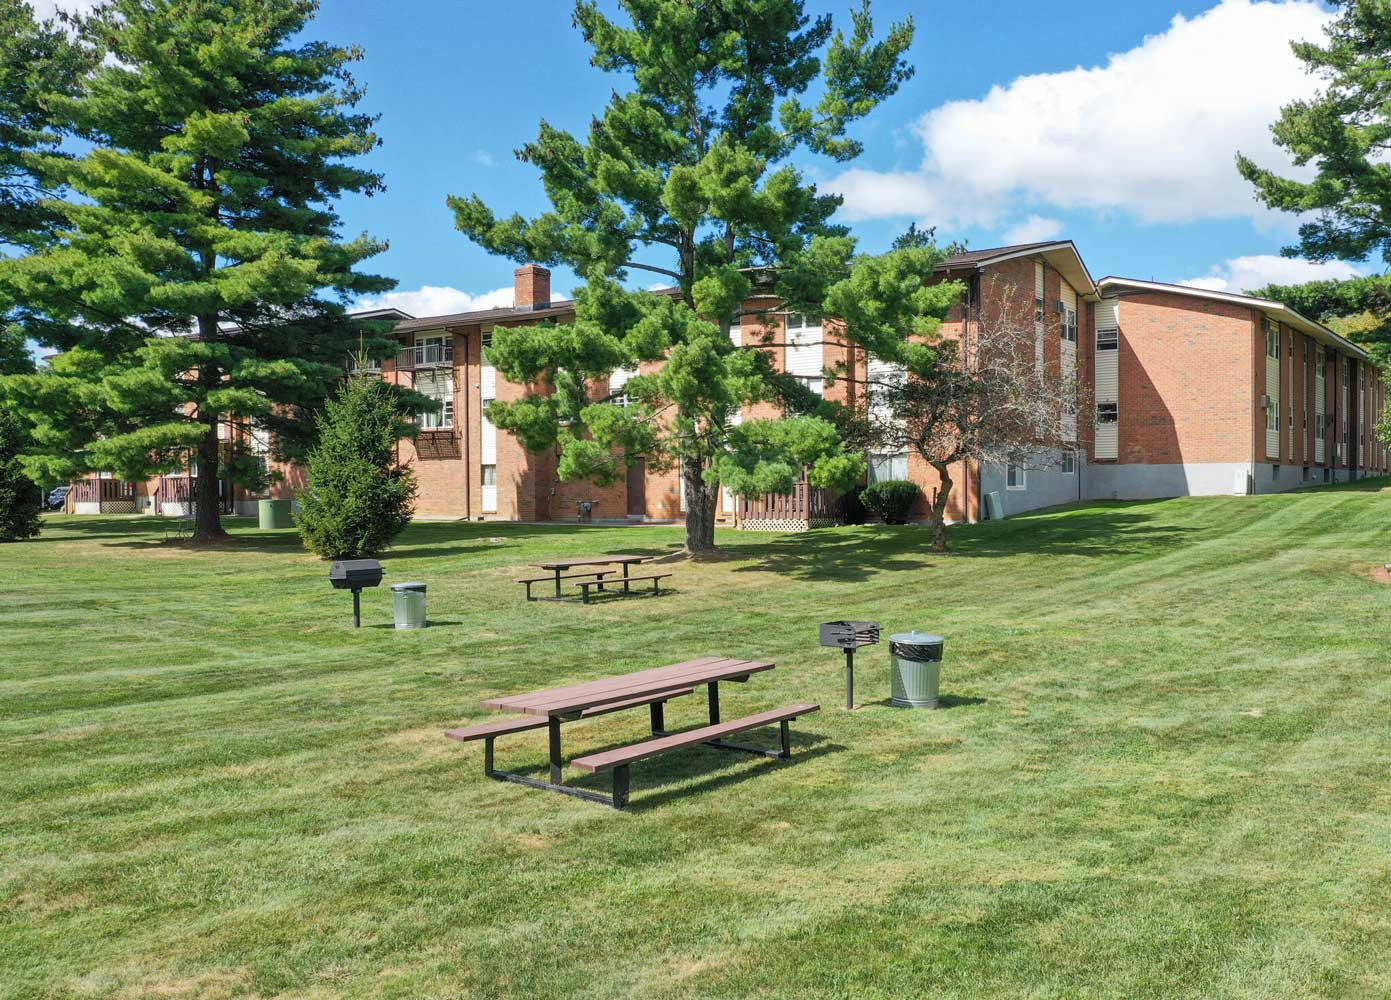 Beautiful Backyard on Site at Mountainview Gardens Apartments in Fishkill, NY